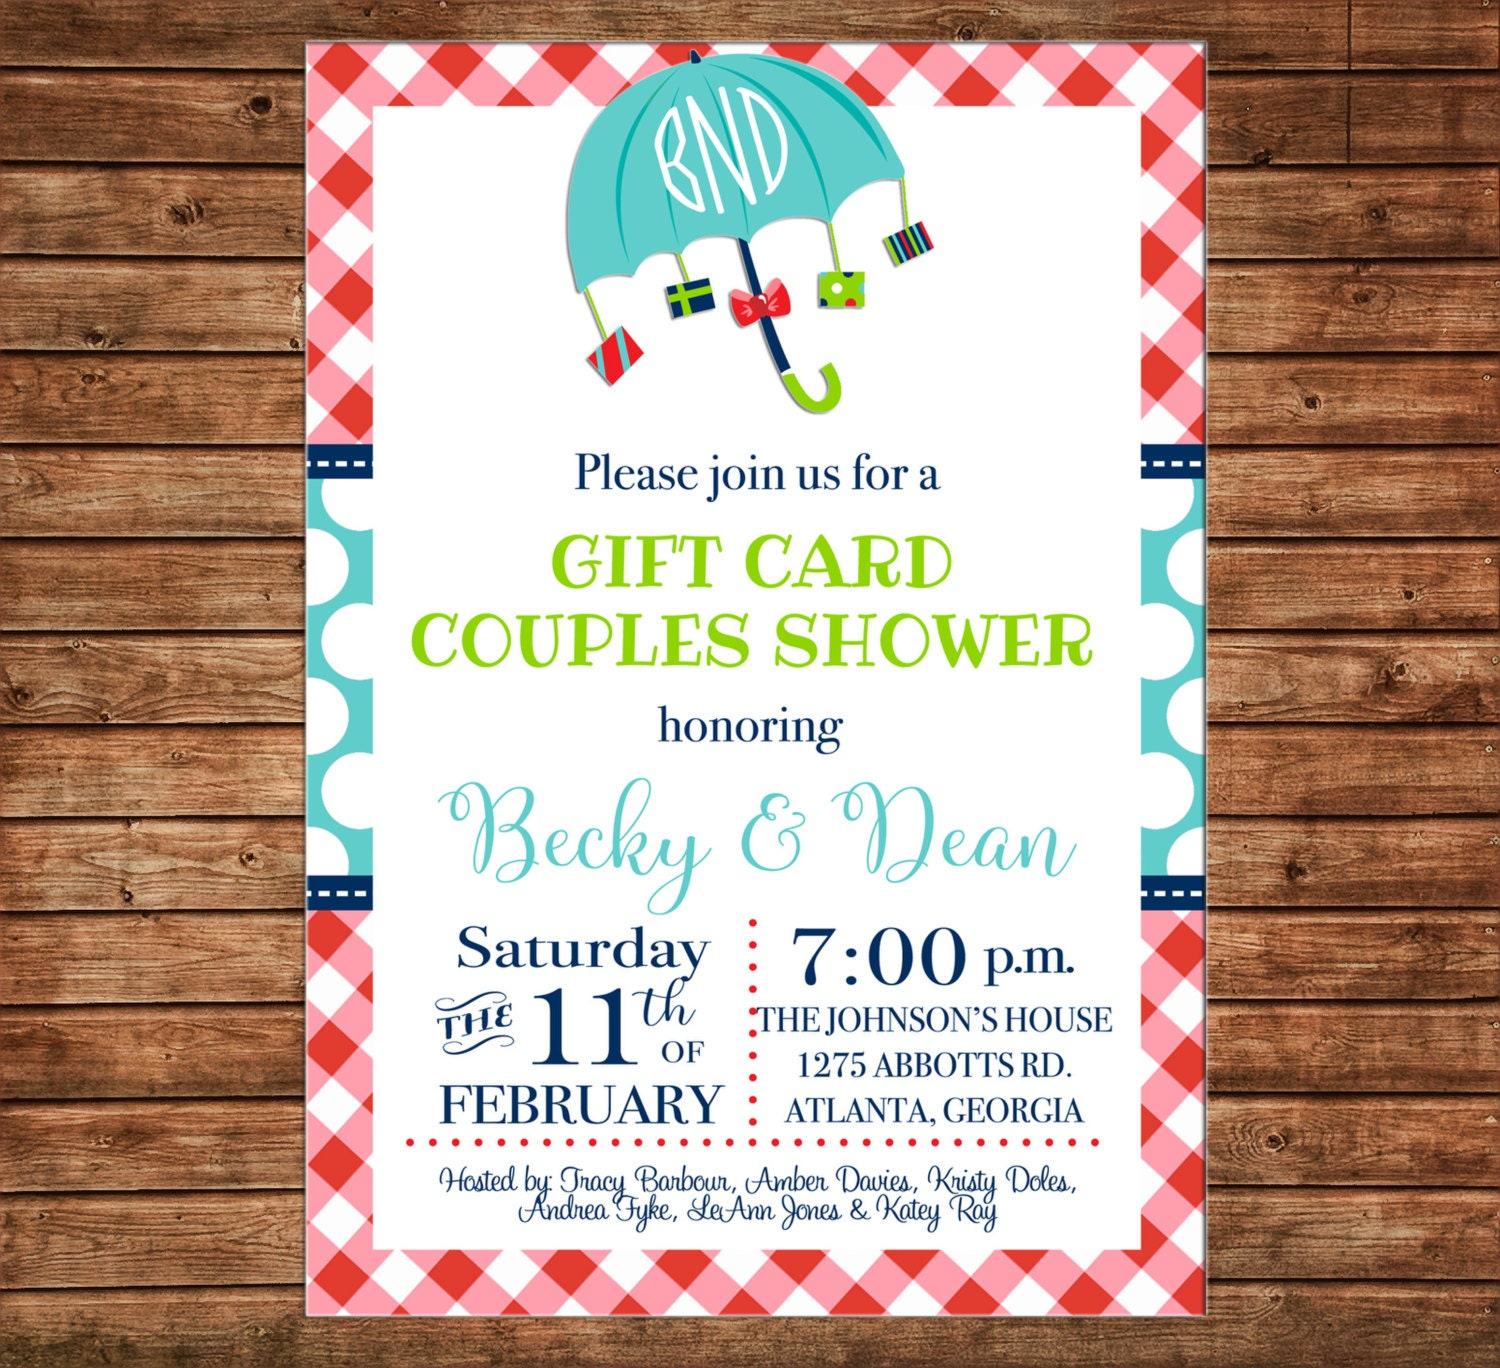 Invitation Gift Card Shower Baby Bridal Wedding Birthday Party